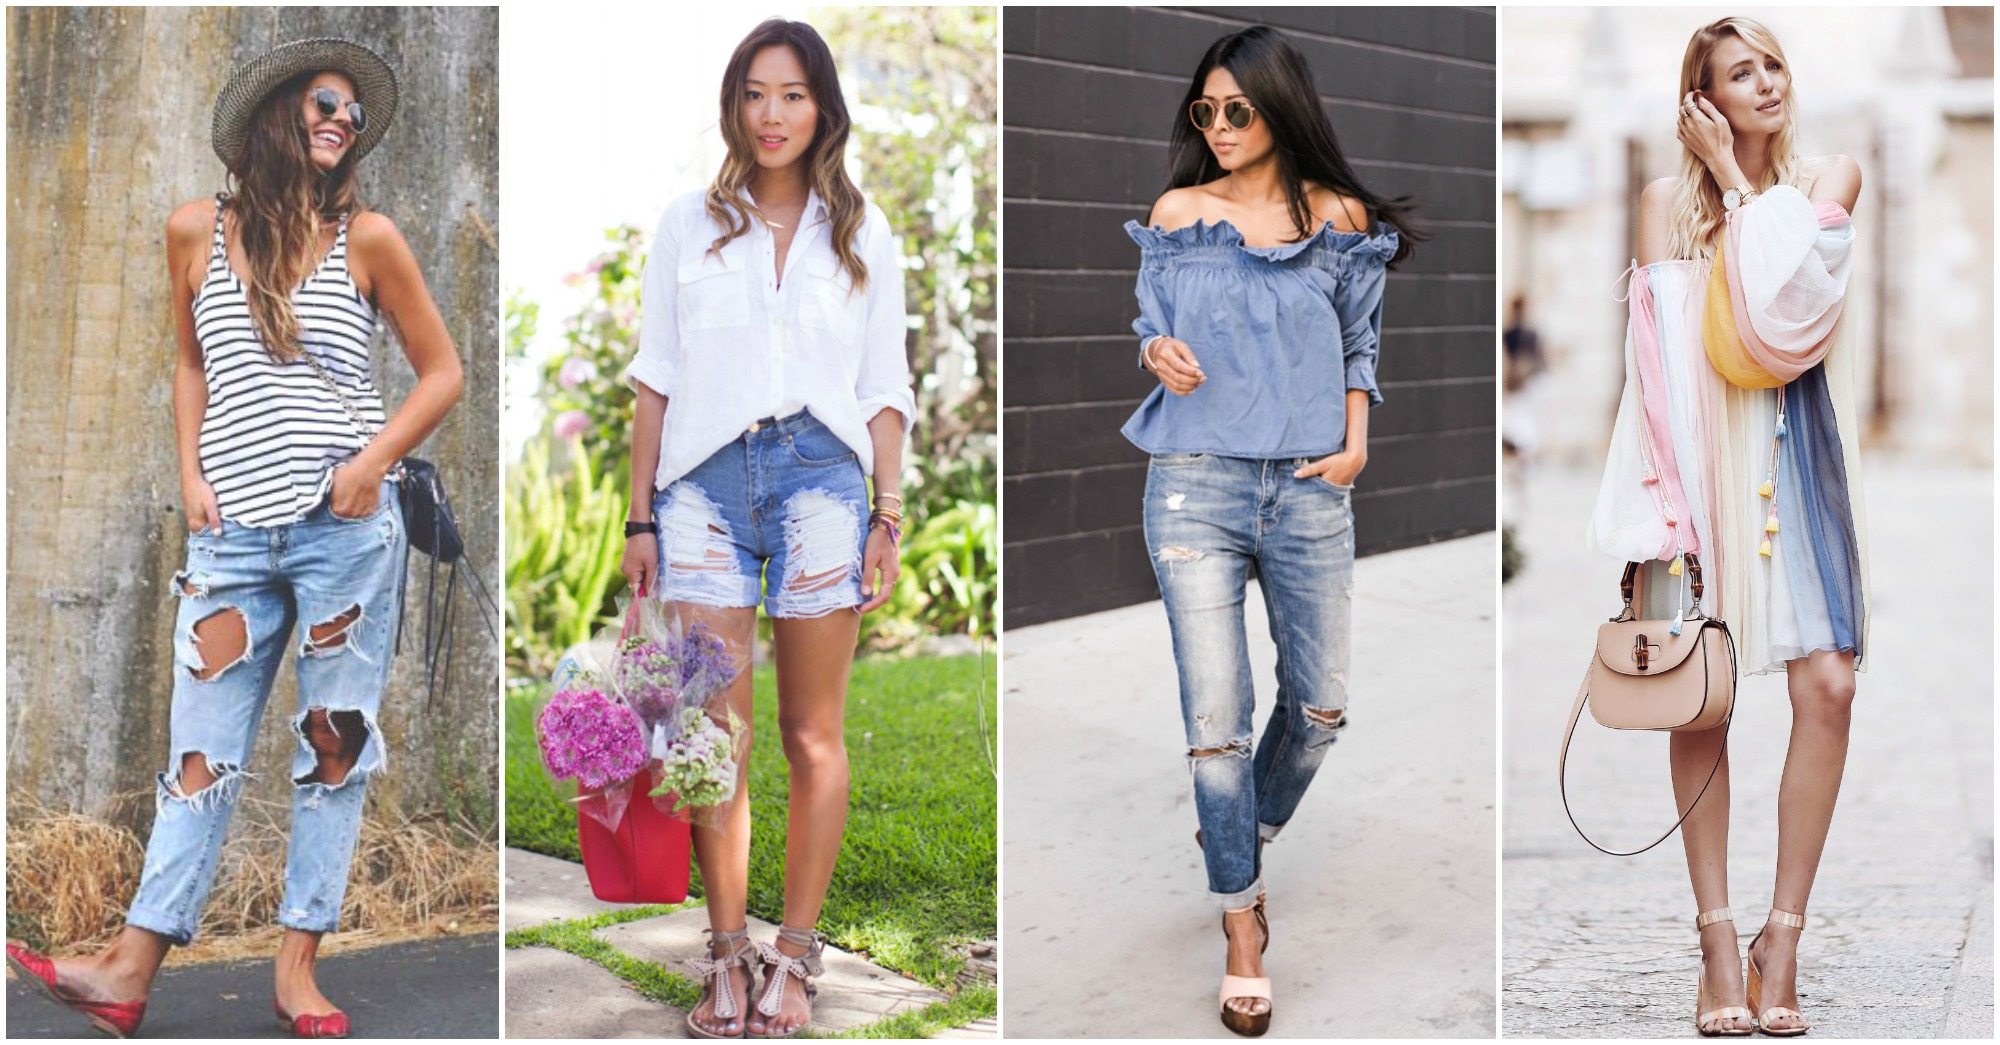 Casual Street Style Outfits to Hit the Streets This Season